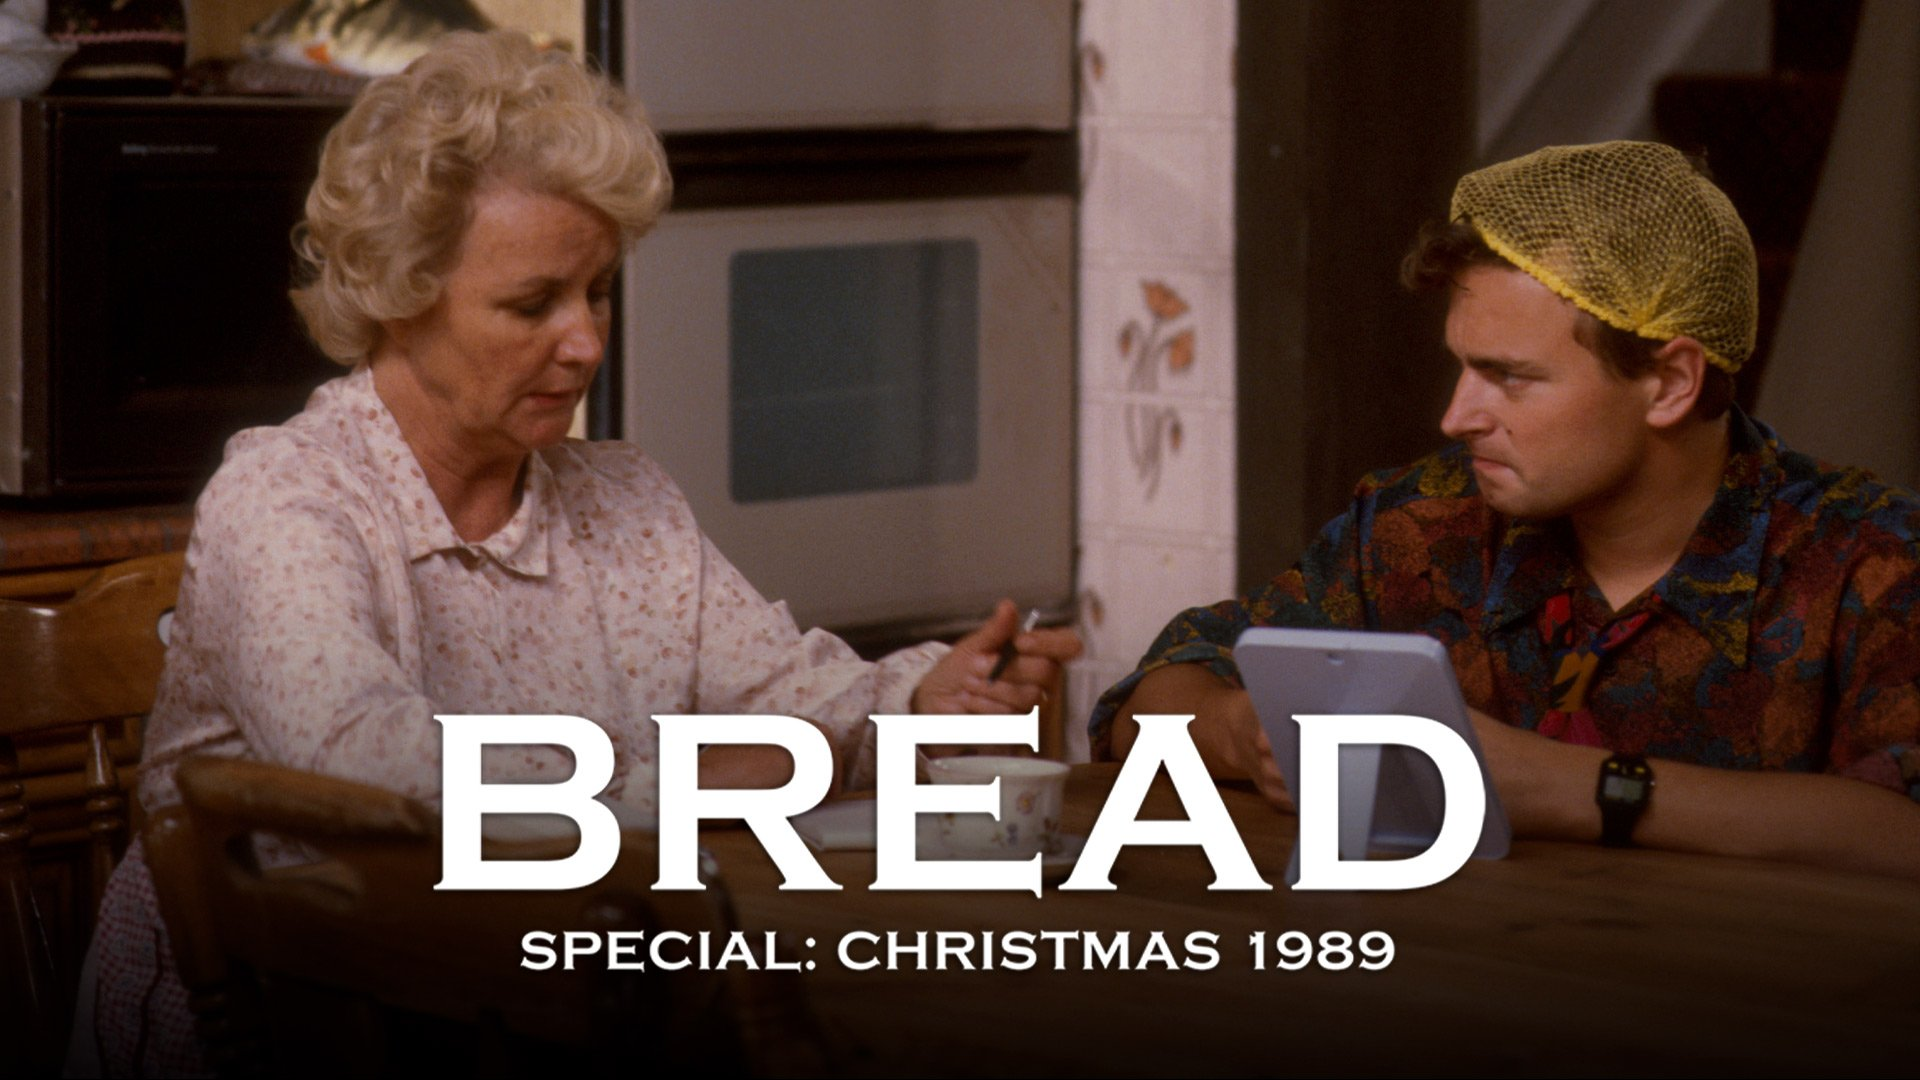 Bread Christmas Special 1989: A Quiet Christmas on BritBox UK